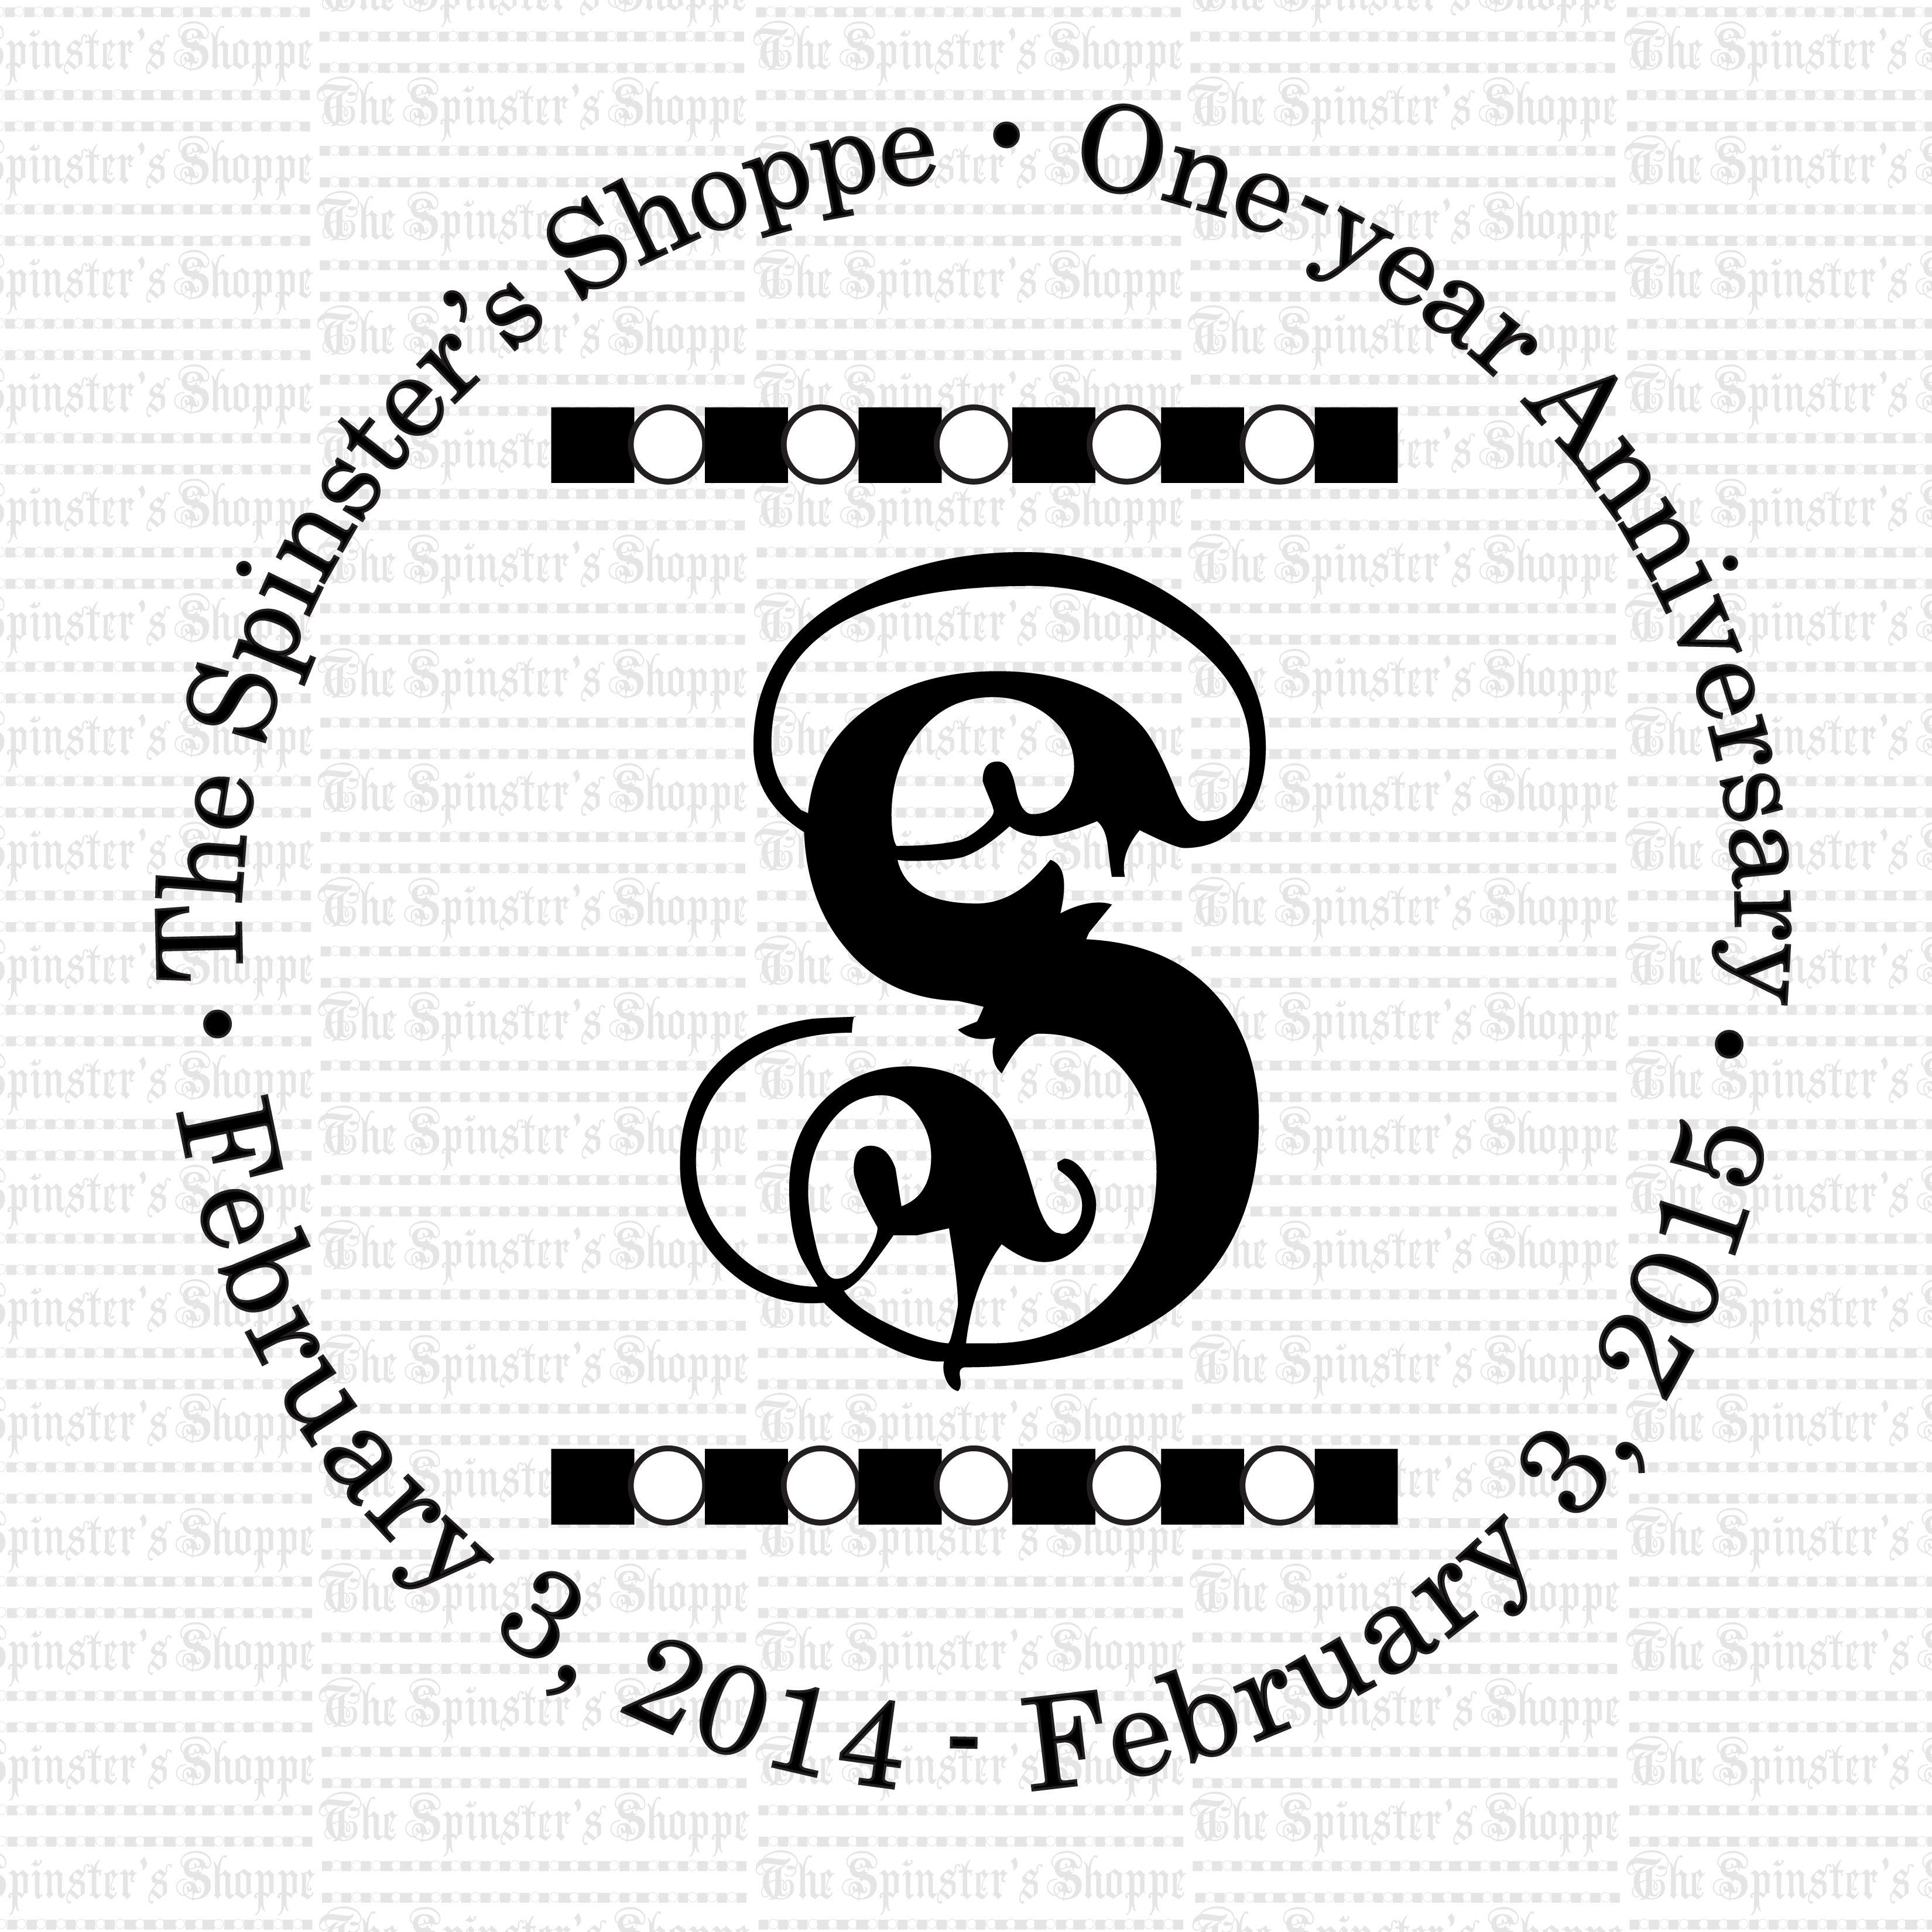 The Spinster's Shoppe turns one year old today! Thanks for your support! To show my appreciation, use coupon code ONEYEAR to take 14% off your order at http://spinstershoppe.co through Valentine's Day, Feb. 14. Enjoy!